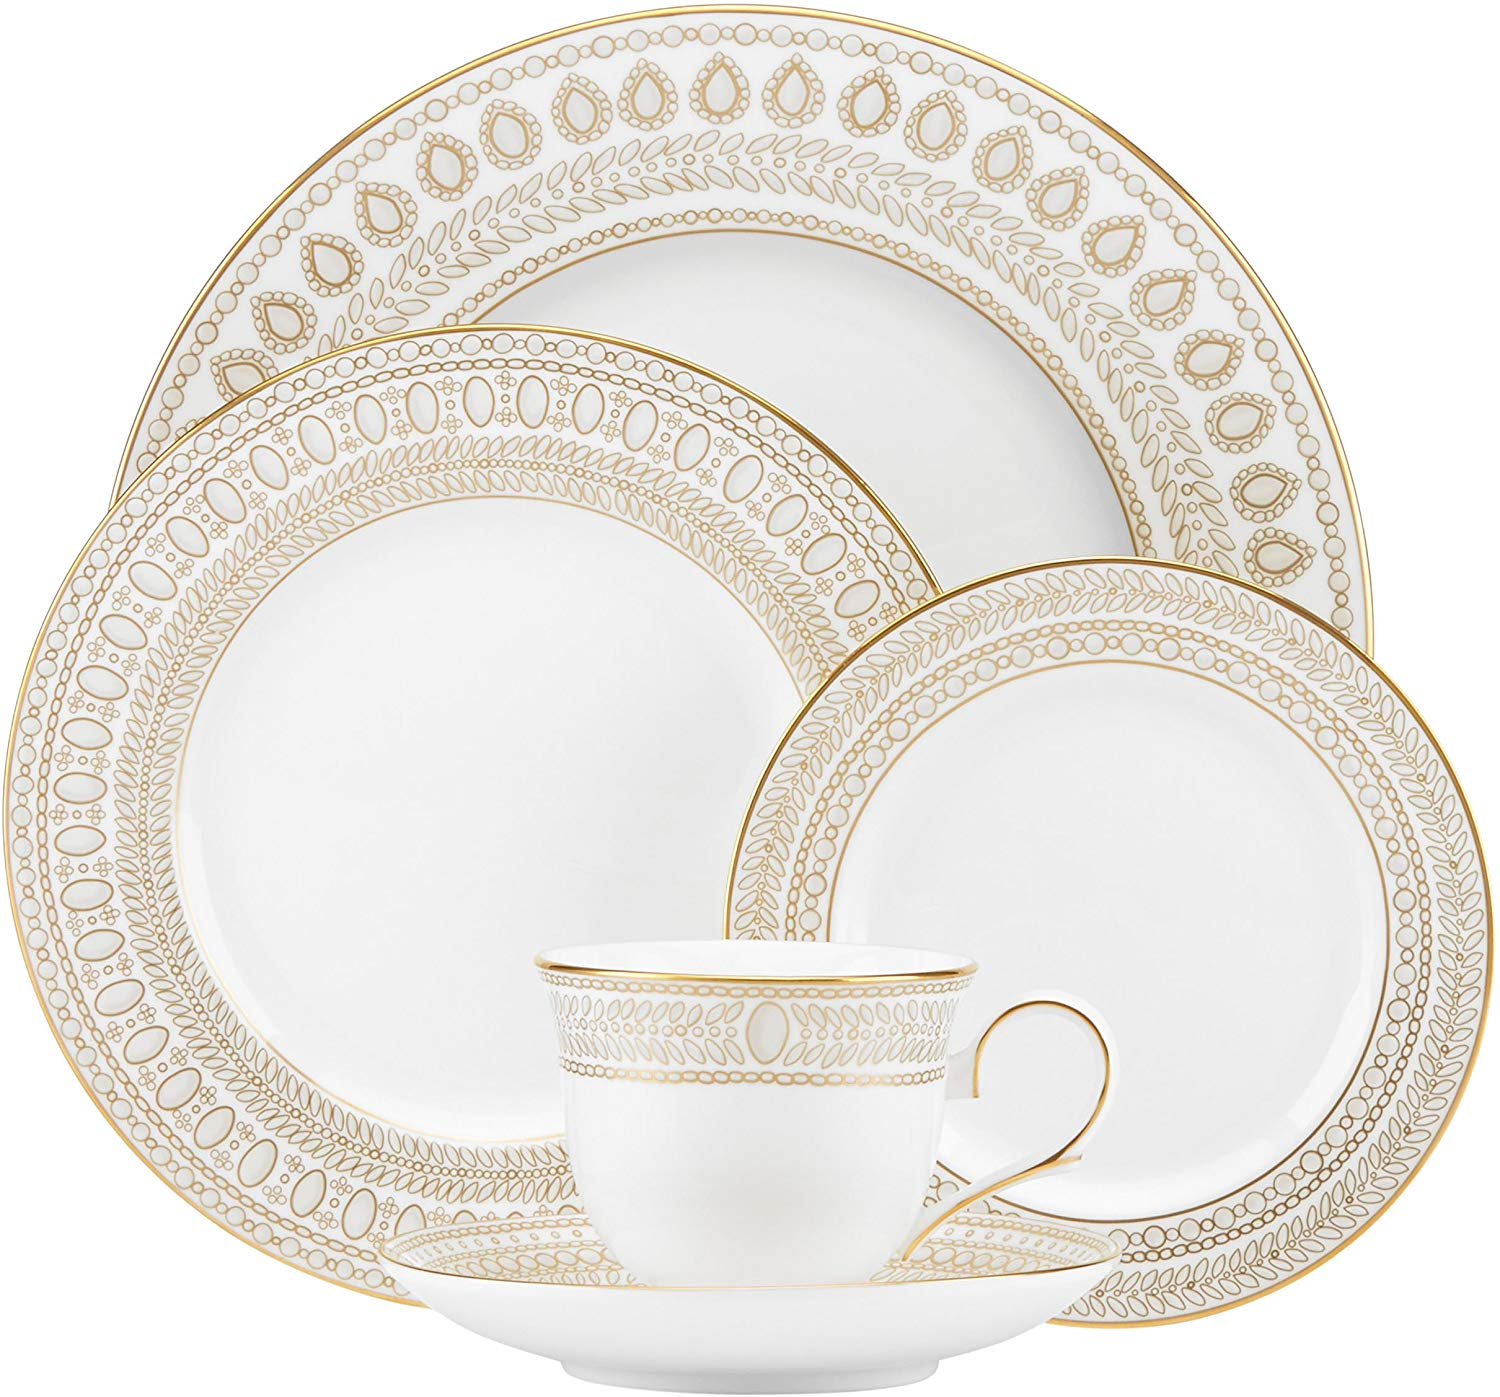 The Best Dinnerware Sets Made in USA - Cook Logic